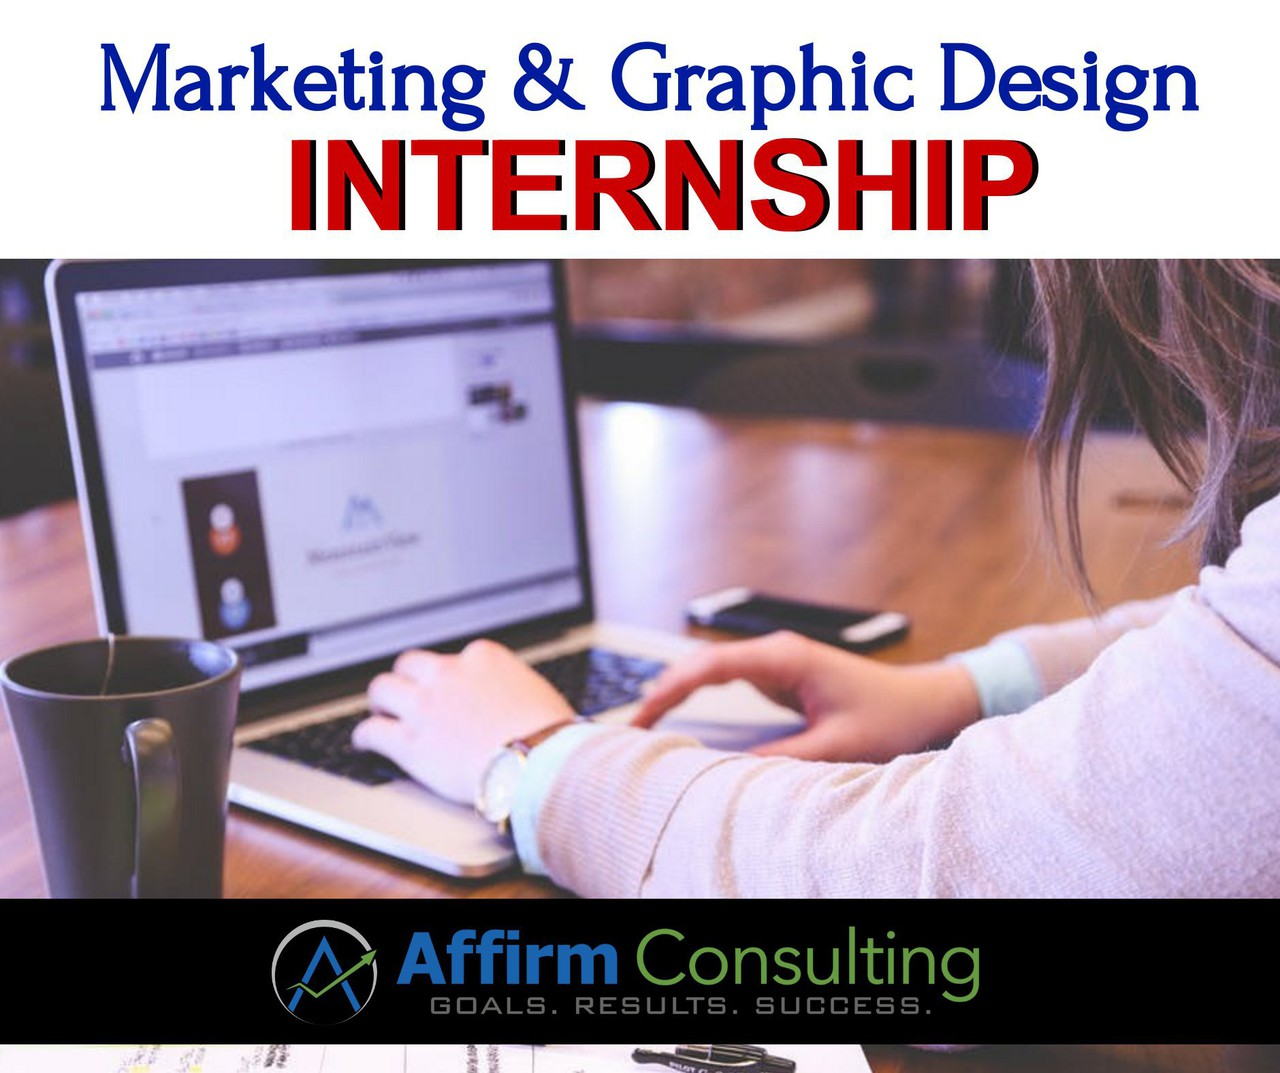 Affirm consulting news updates for Design consultancy internship